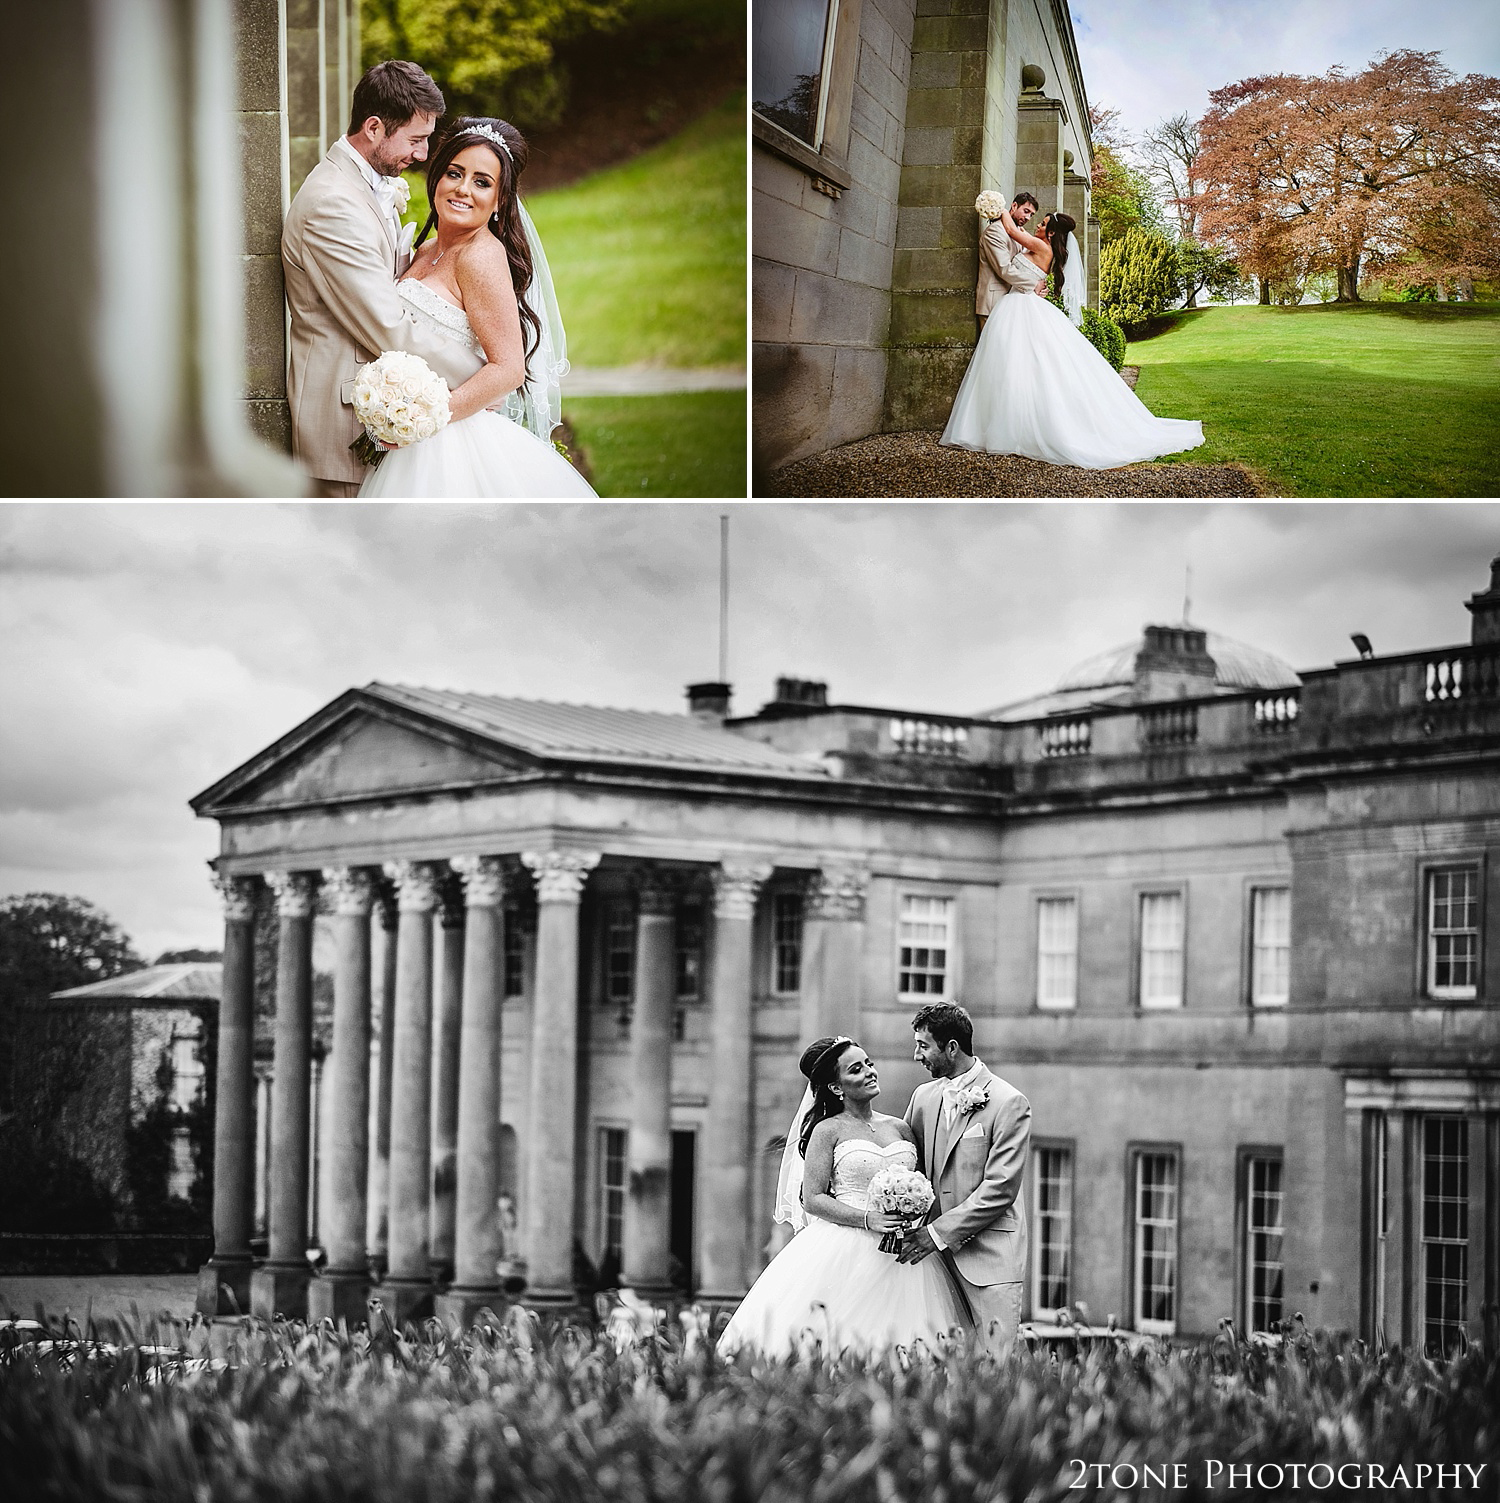 Stunning wedding photography at Wynyard Hall by Newcastle and Durham based Wedding Photographer www.2tonephotography.co.uk